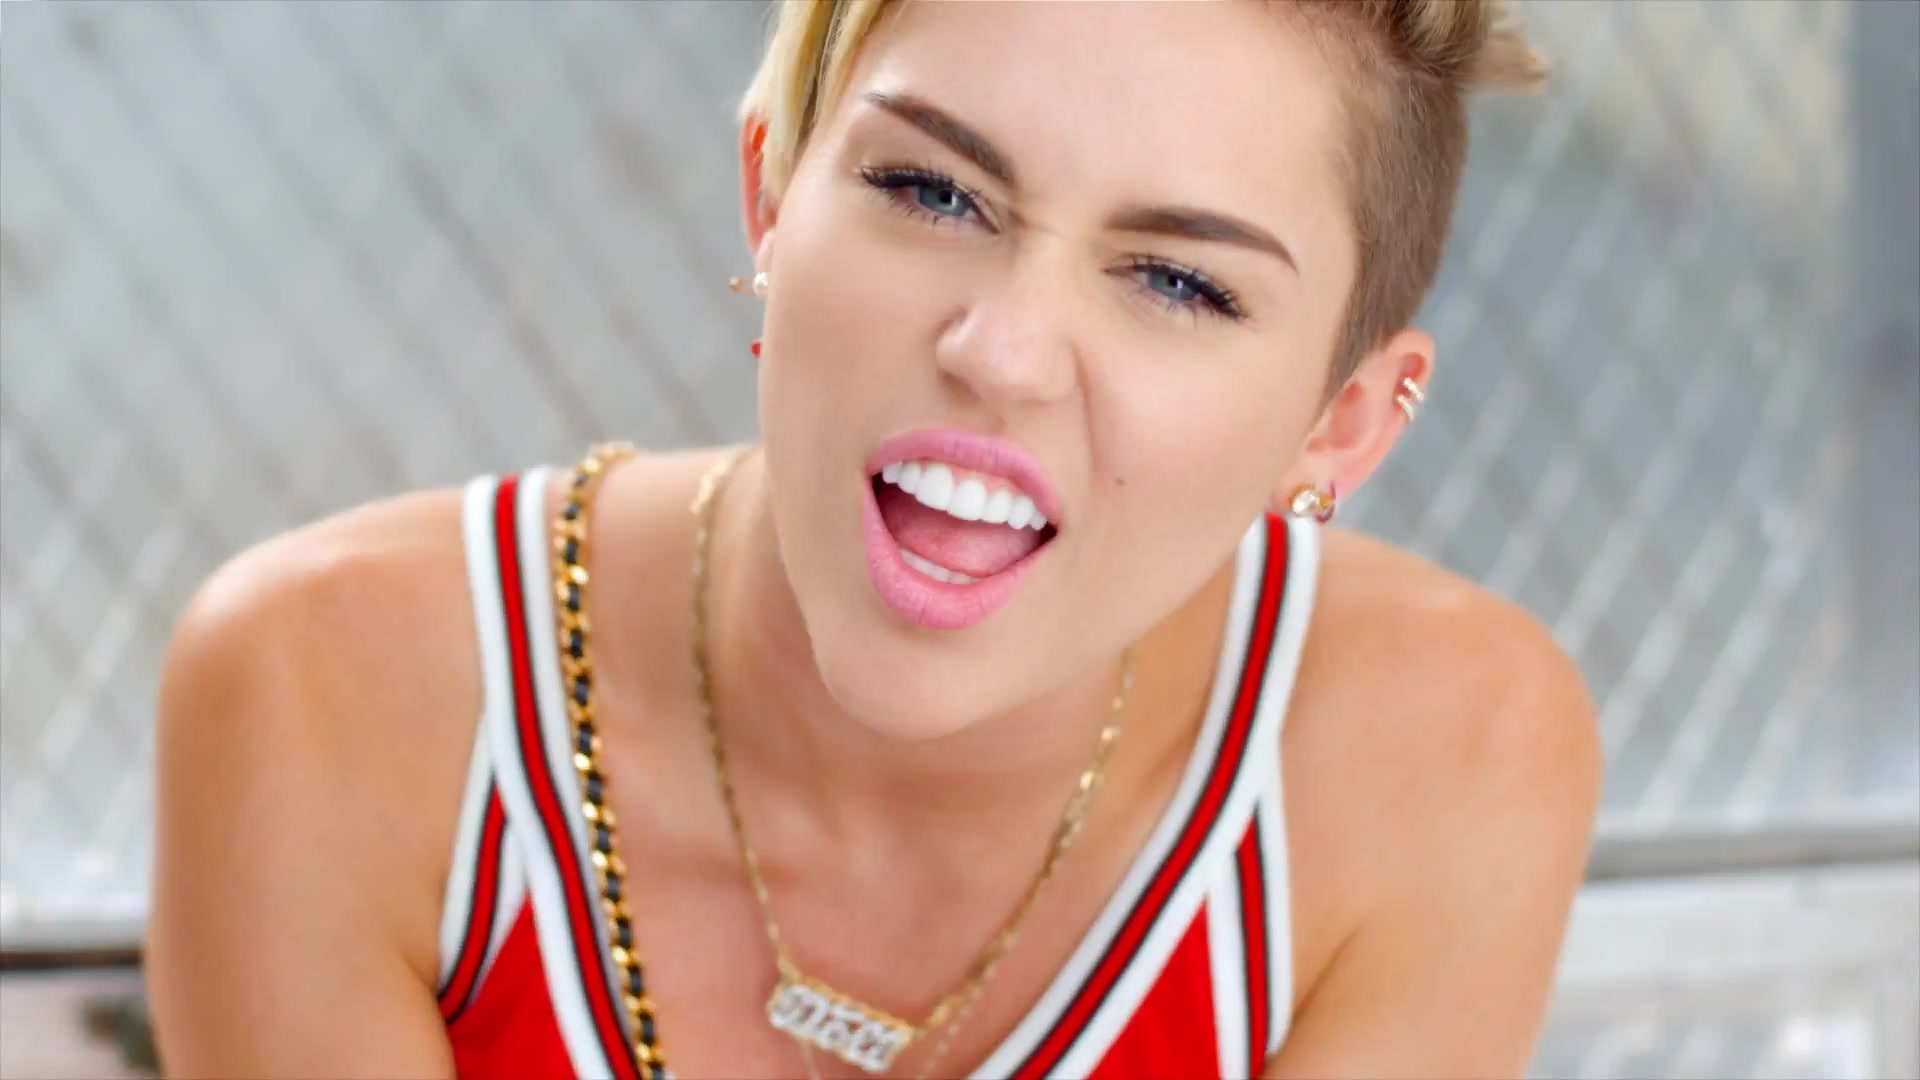 image Miley cyrus 23 video recut with only shots of miley